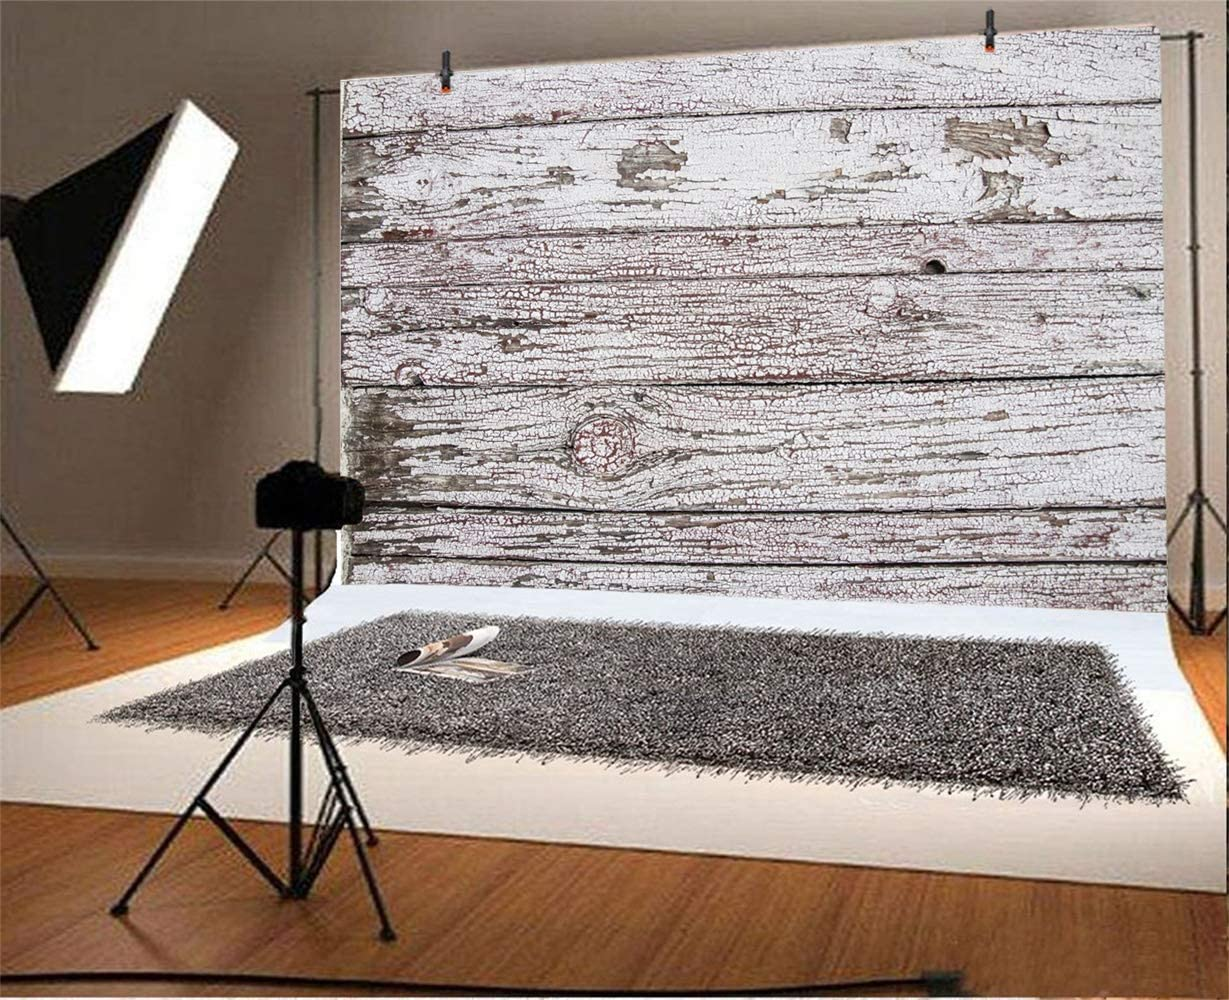 SZZWY Polyester 7x5ft Rustic Mottled White Lateral-Cut Wood Plank Photography Background Faded Wooden Board Backdrop Children Adult Pets Artistic Portrait Shoot Countryside Studio